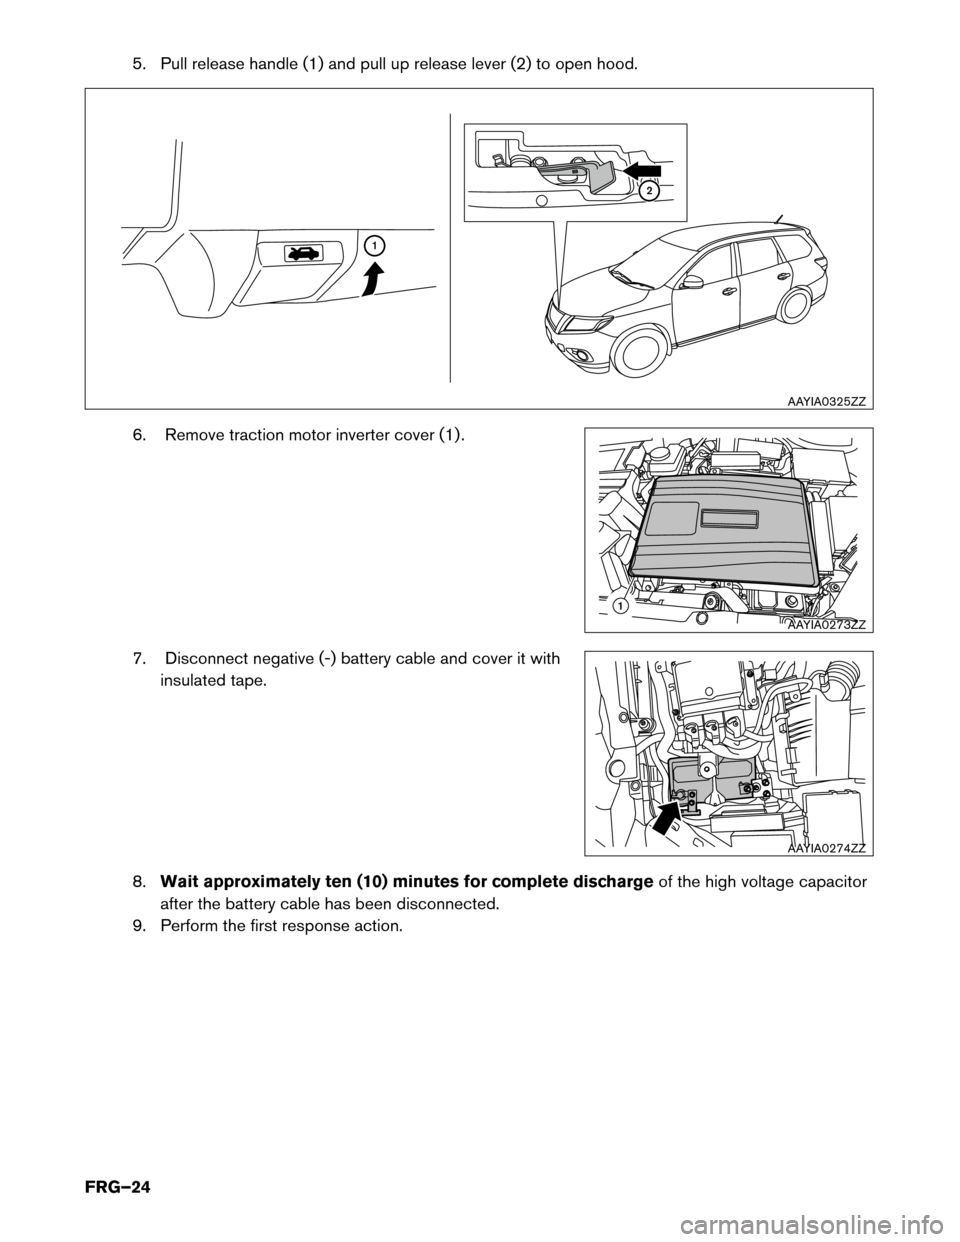 NISSAN PATHFINDER HYBRID 2014 R52 / 4.G First Responders Guide, Page 24